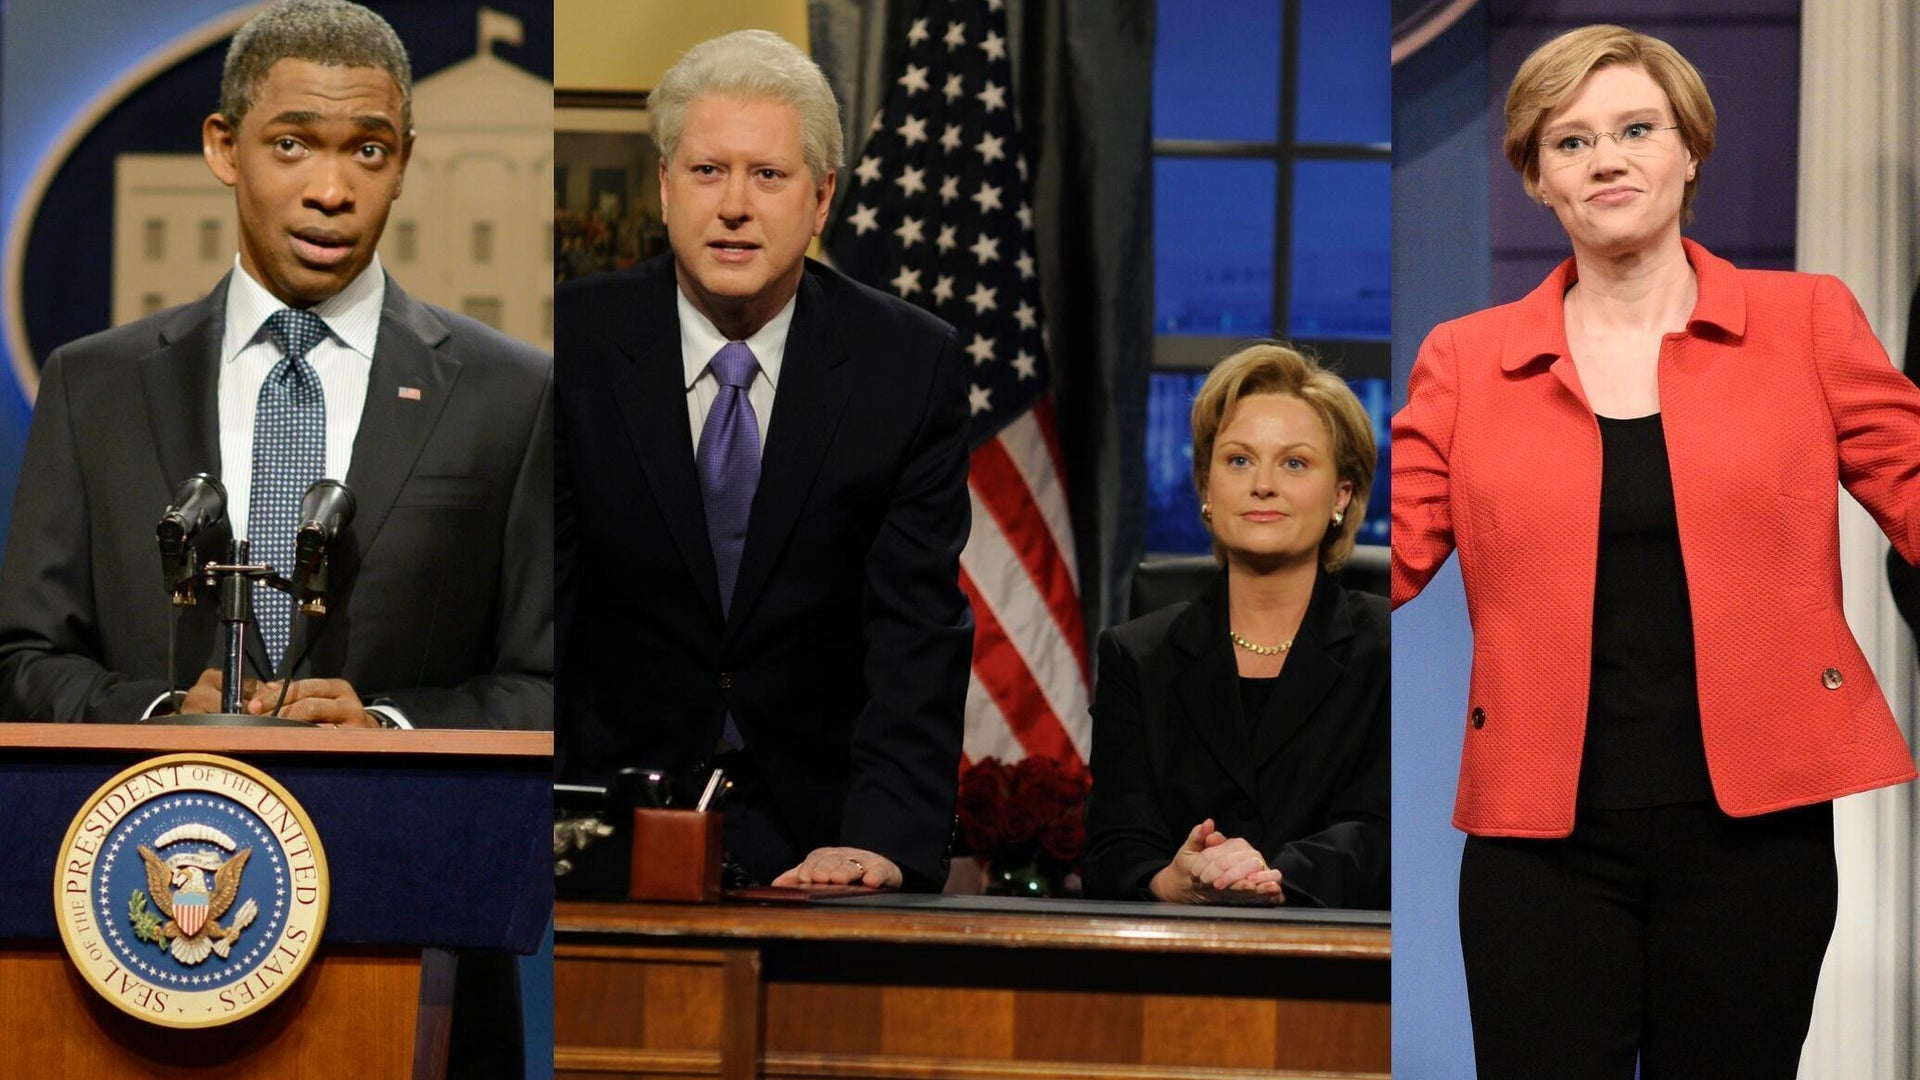 Jay Pharoah, Darrell Hammond, Amy Poehler, and Kate McKinnon, Saturday Night Live